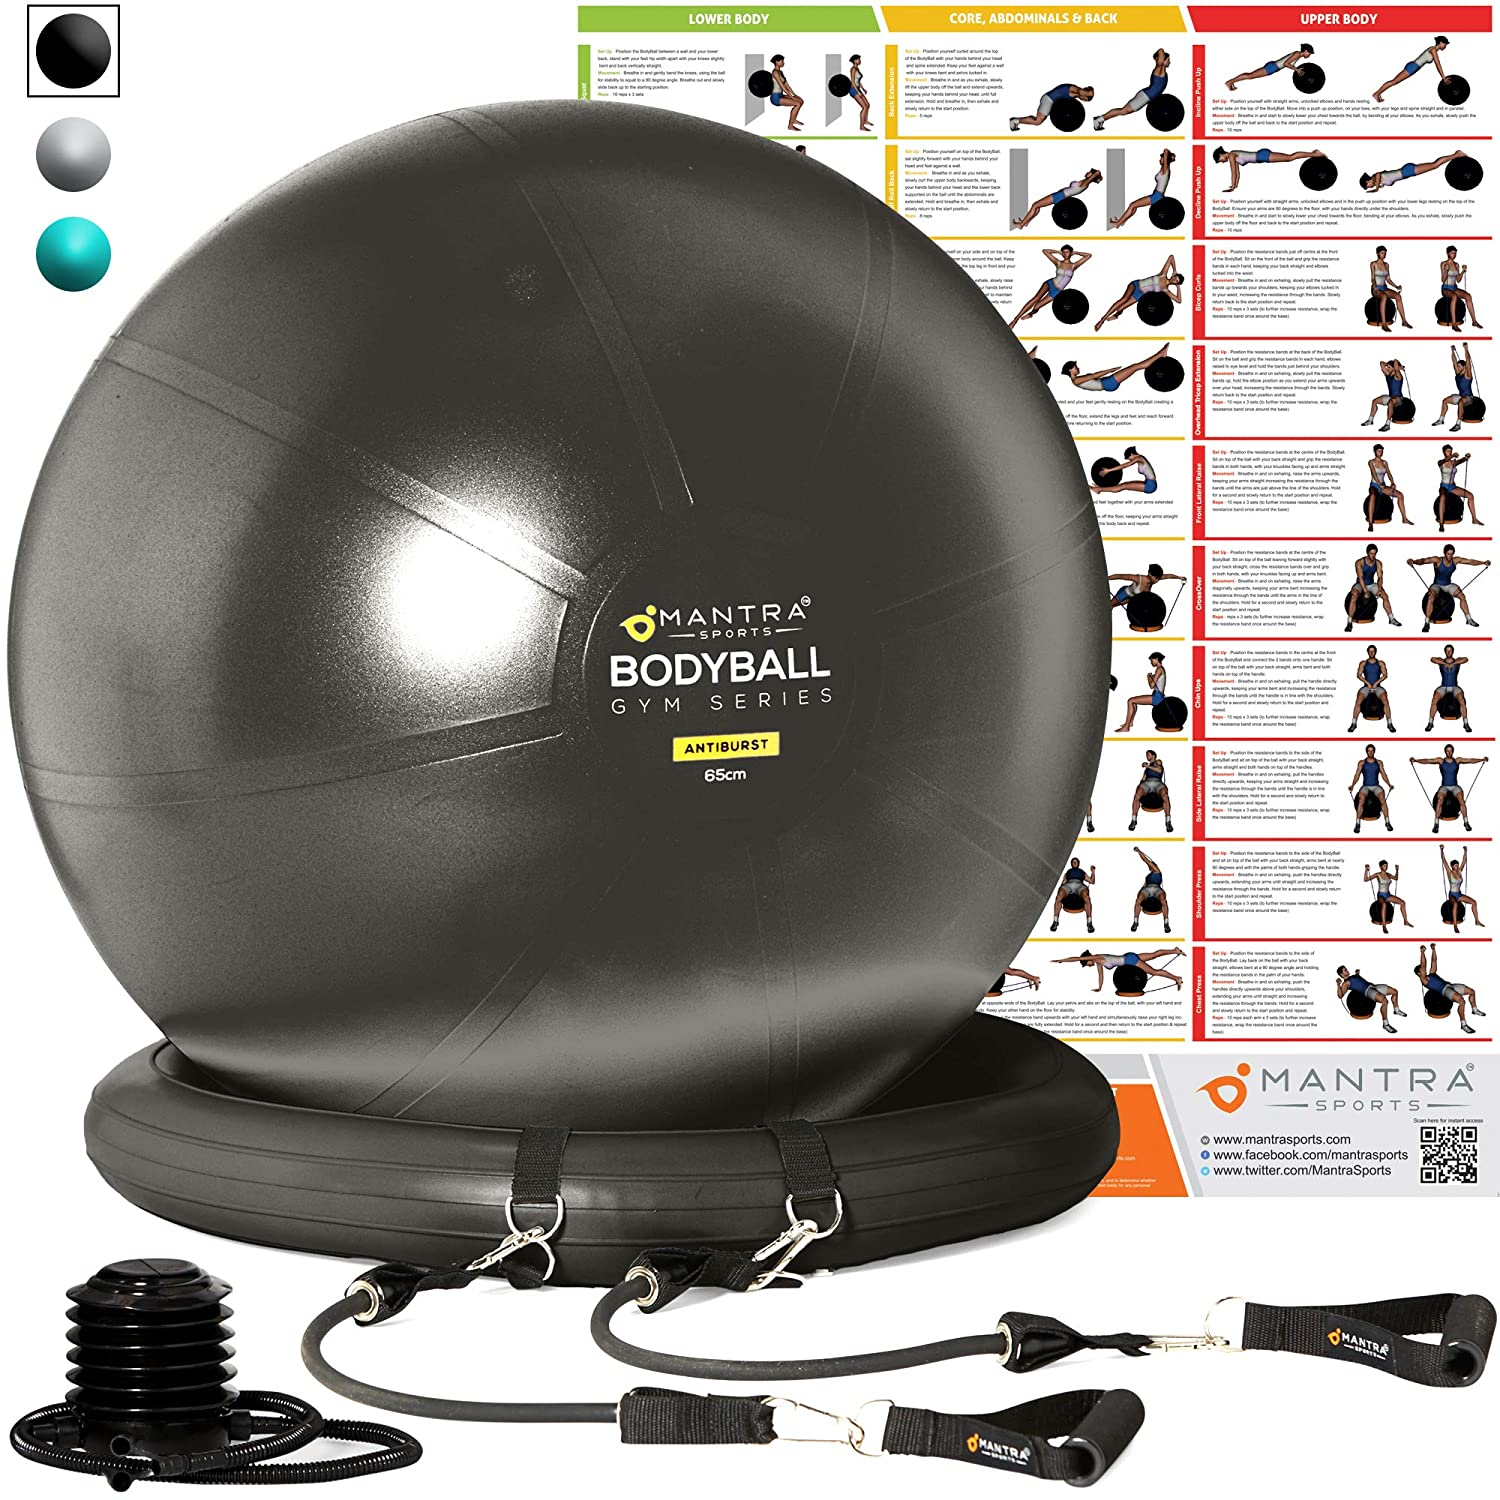 Exercise Ball Chair – 65cm 75cm Yoga Fitness Pilates Ball Stability Base for Home Gym Office – Resistance Bands, Workout Poster Pump. Improves Balance, Core Strength Posture – Men Women